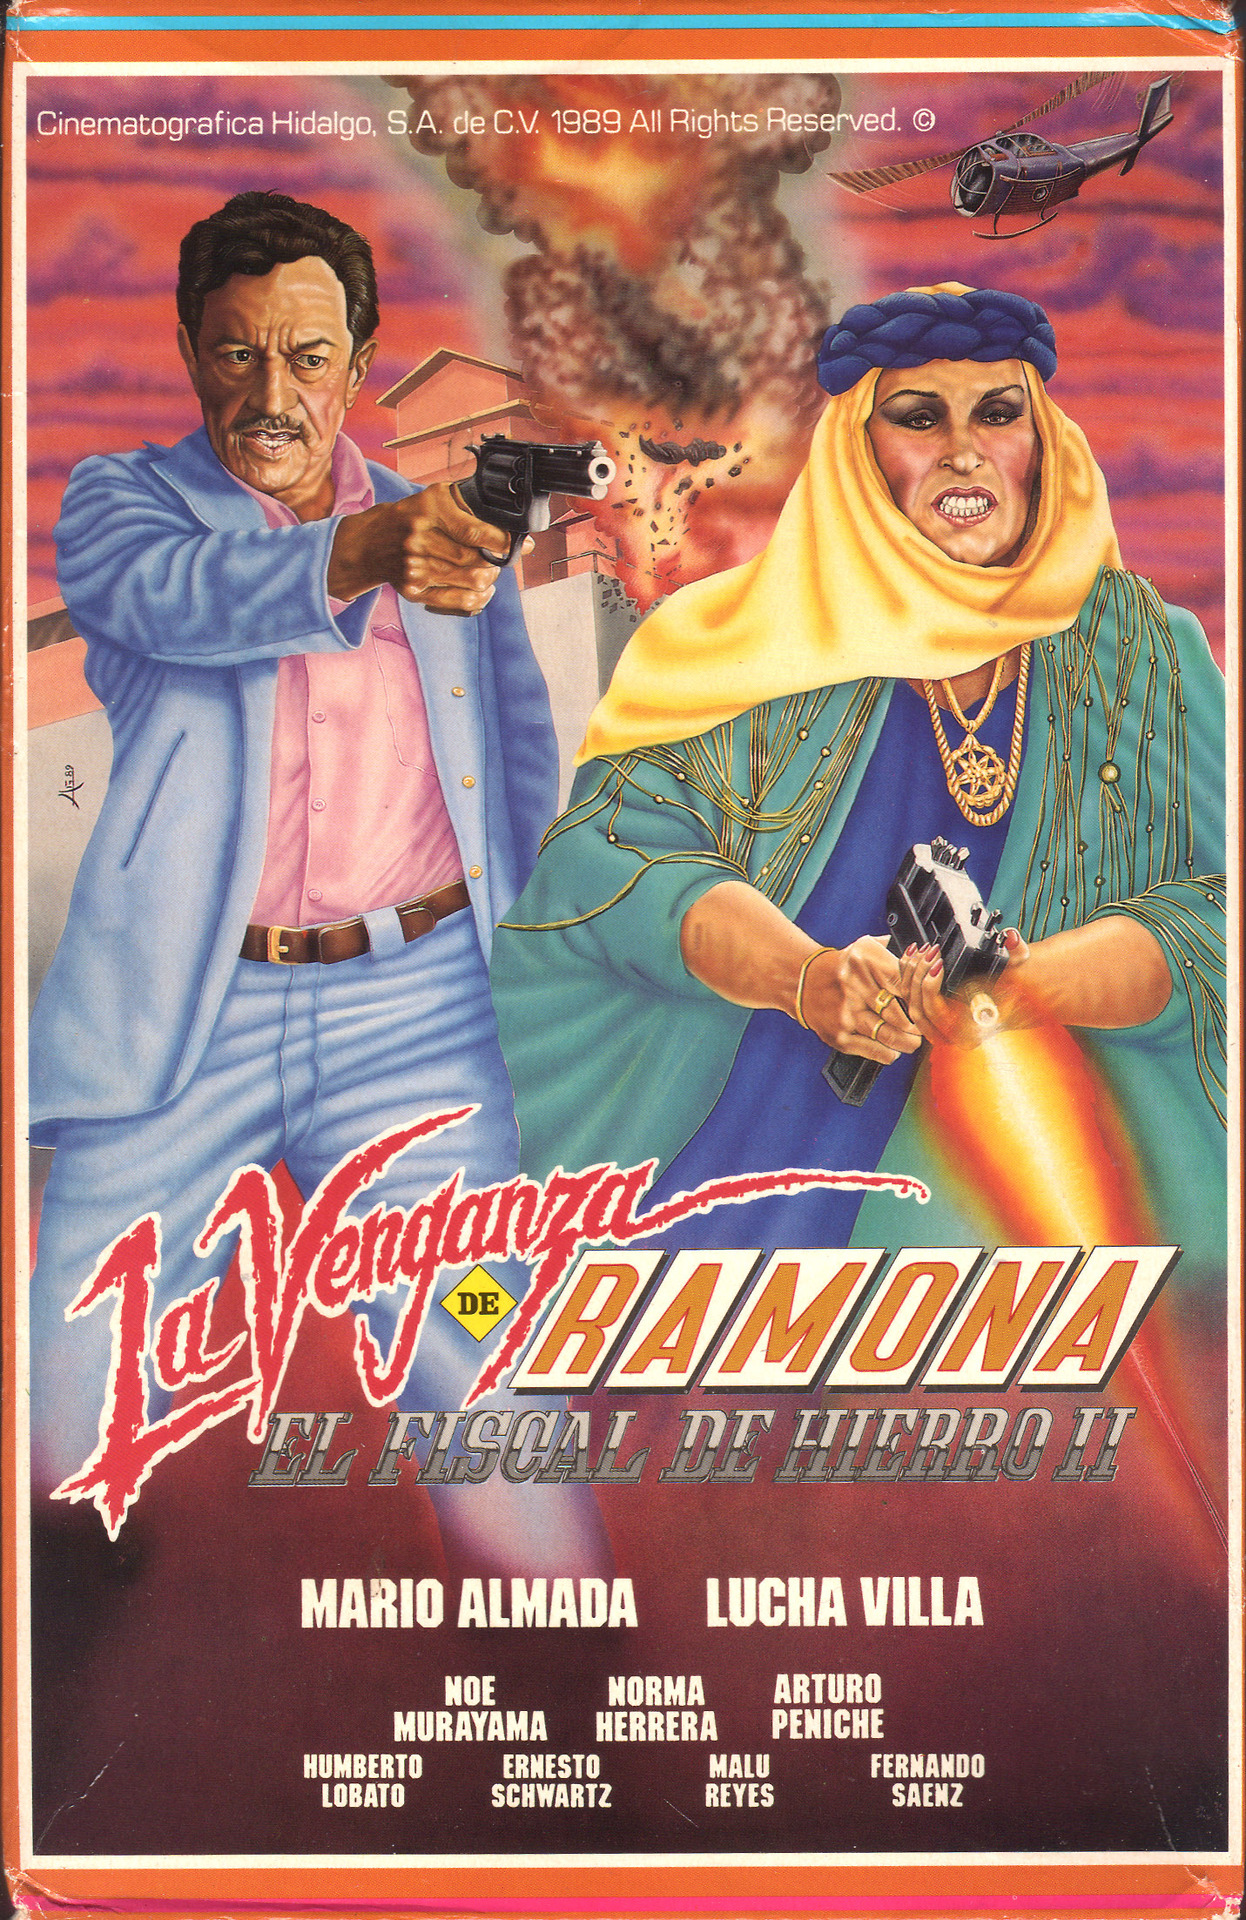 vhs covers illustrations 9